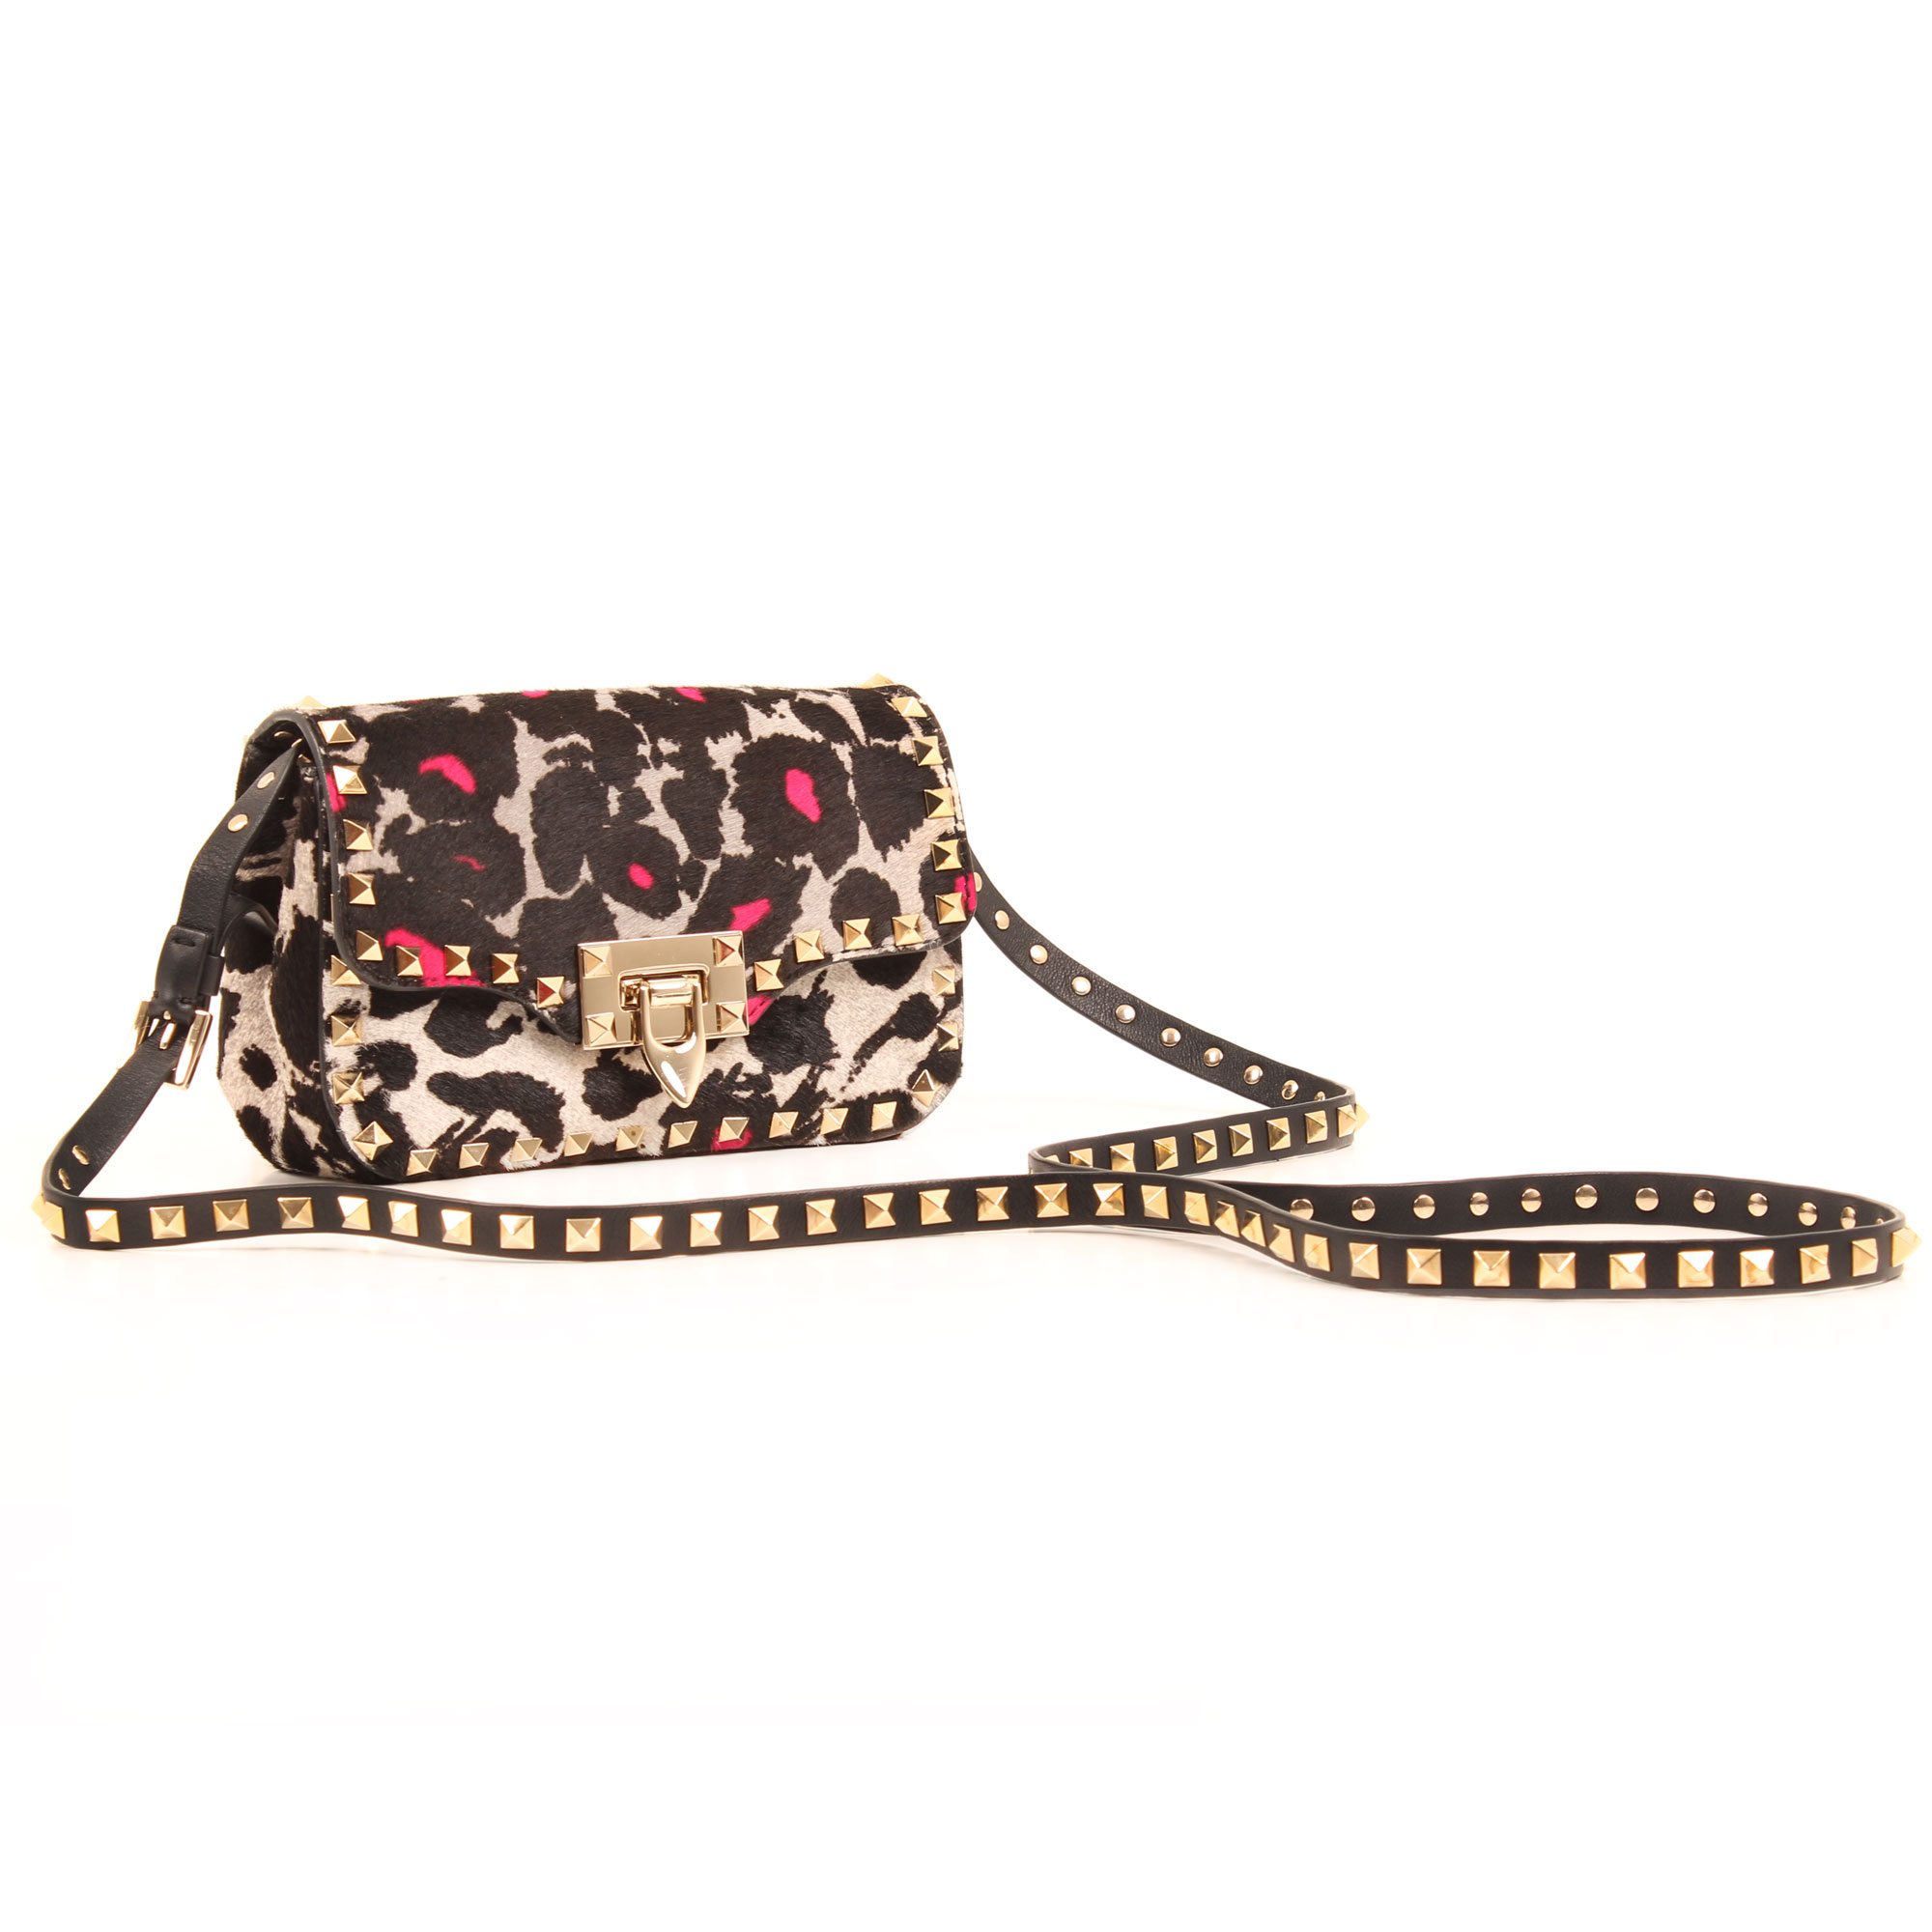 Imagen general del bolso valentino rockstud mini cross body leopard print pink hair calf